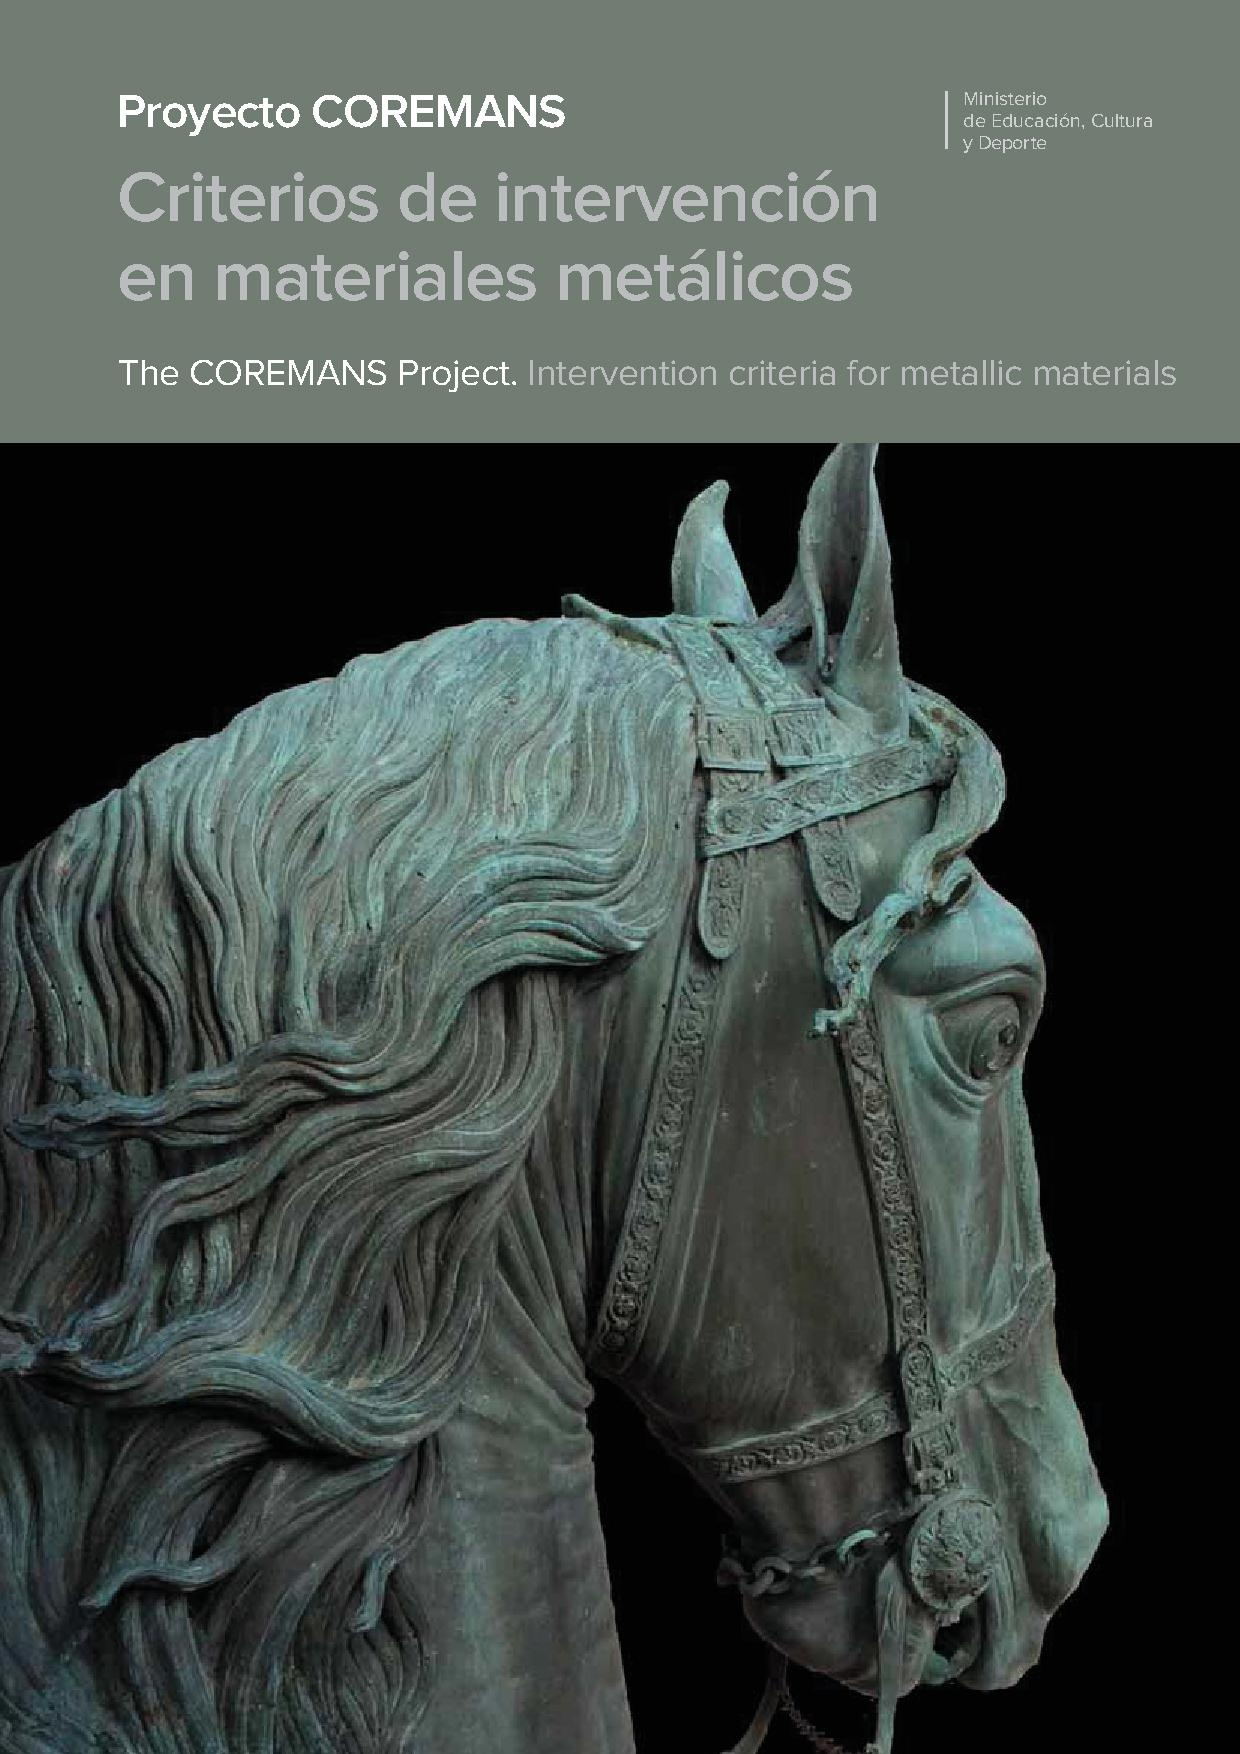 proyecto-coremans-criterios-de-intervencion-en-materiales-metalicos